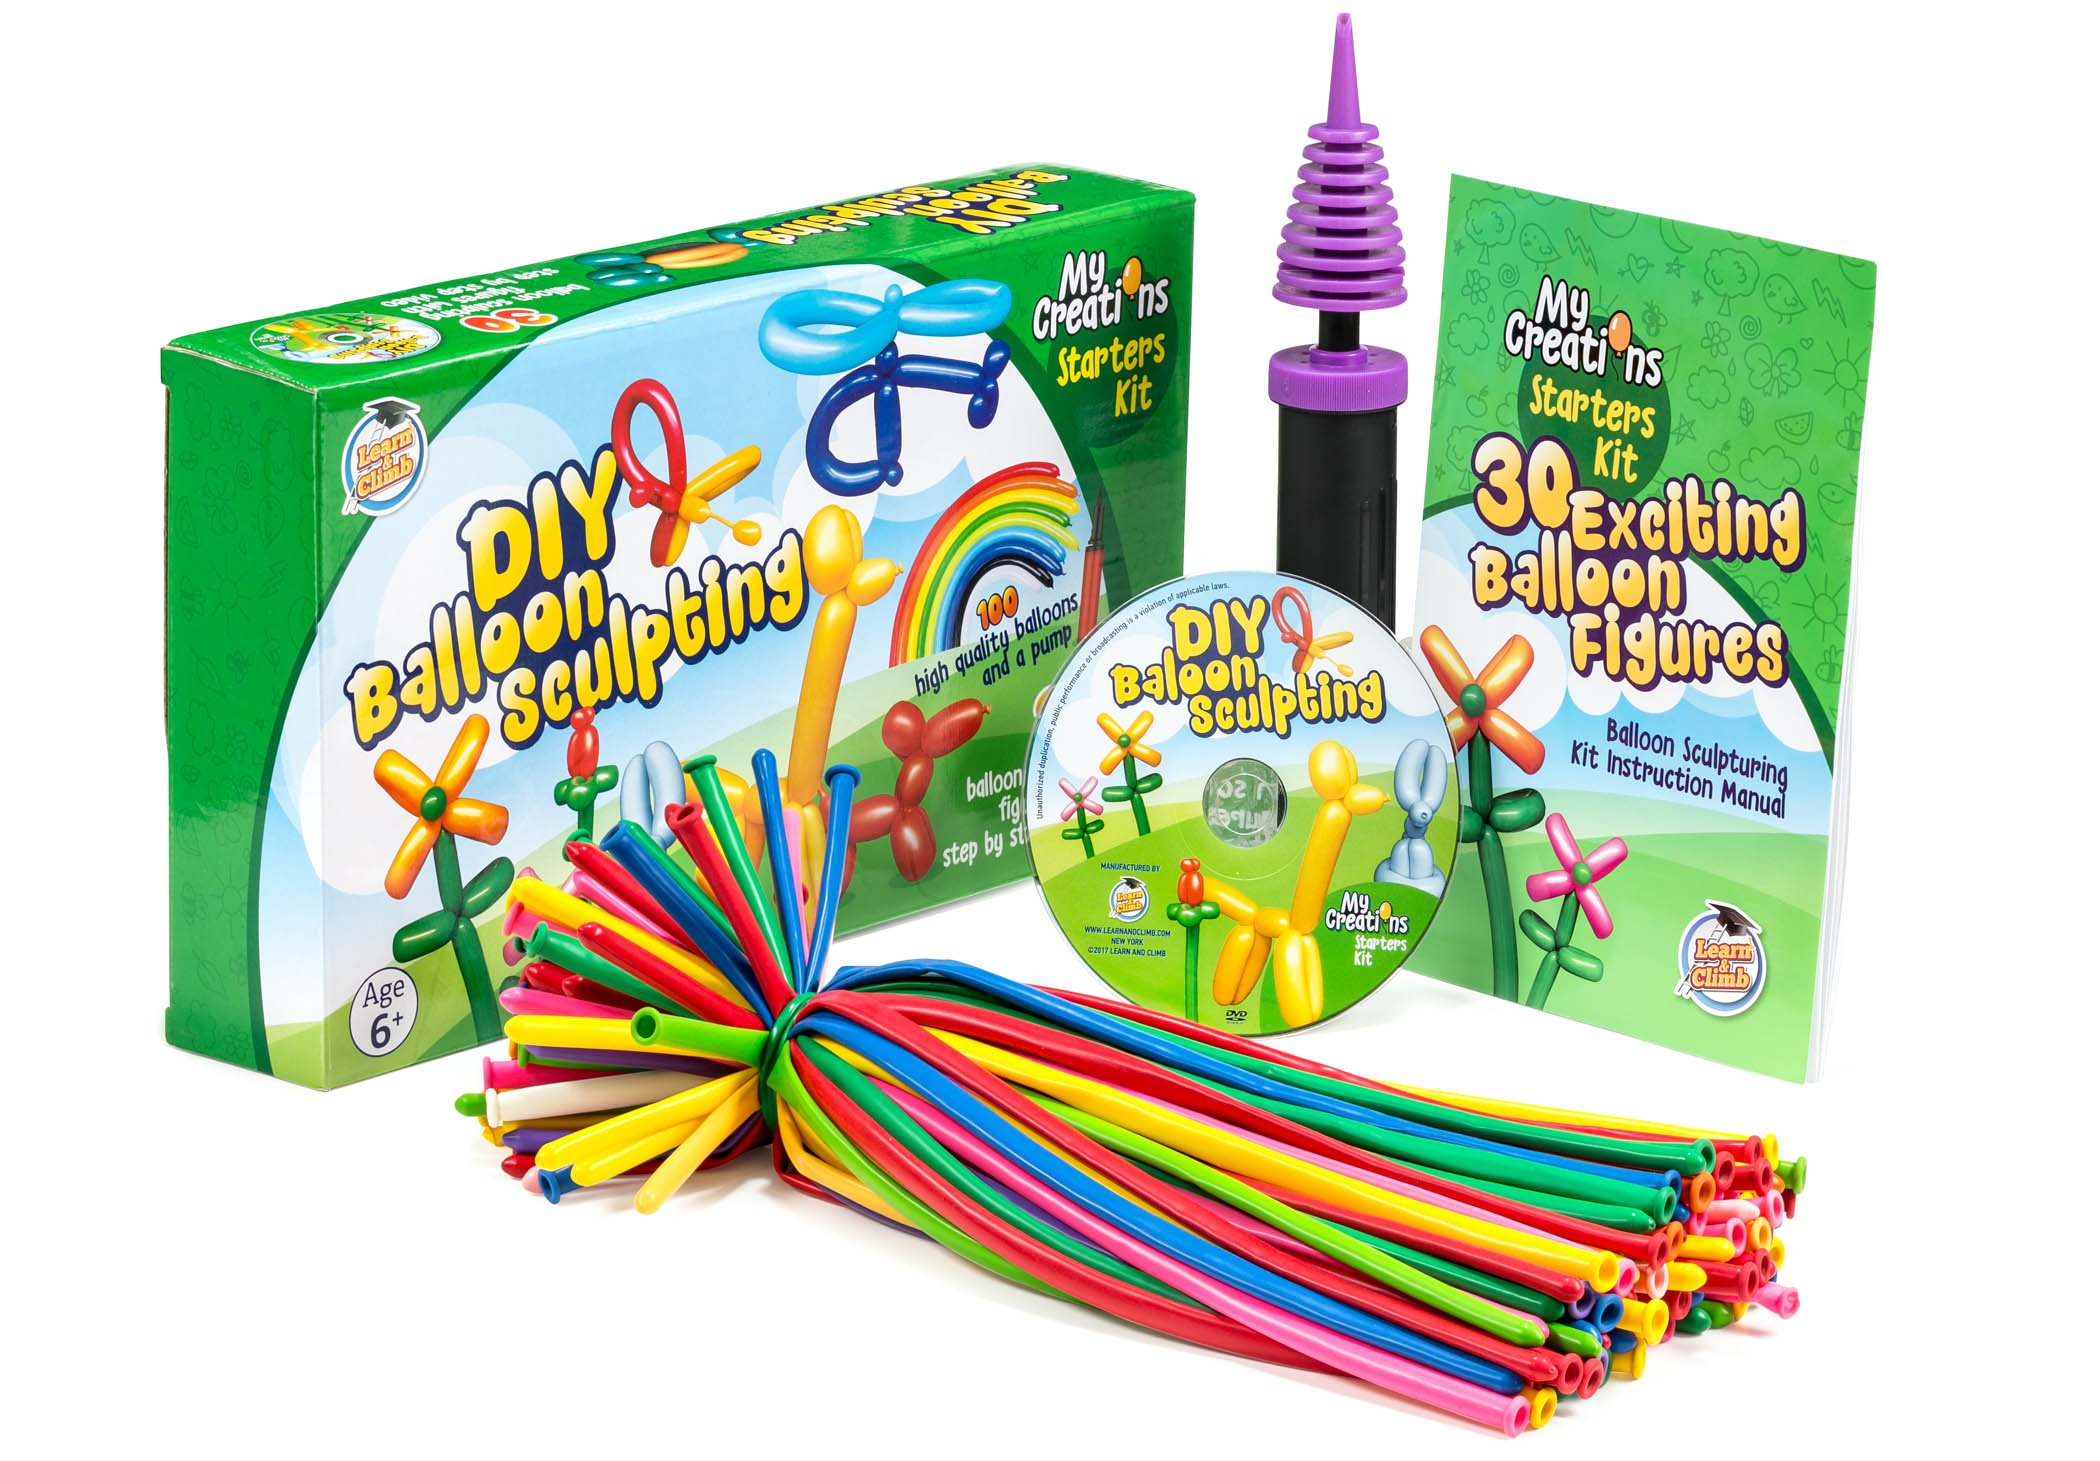 DIY Balloon Animal Kit for beginners. Twisting & Modeling balloon Kit 30 + Sculptures ,100 Balloons for balloon animals , Pump, Manual + DVD. Party Fun Activity/Gift for, Teens Boys and Girls.